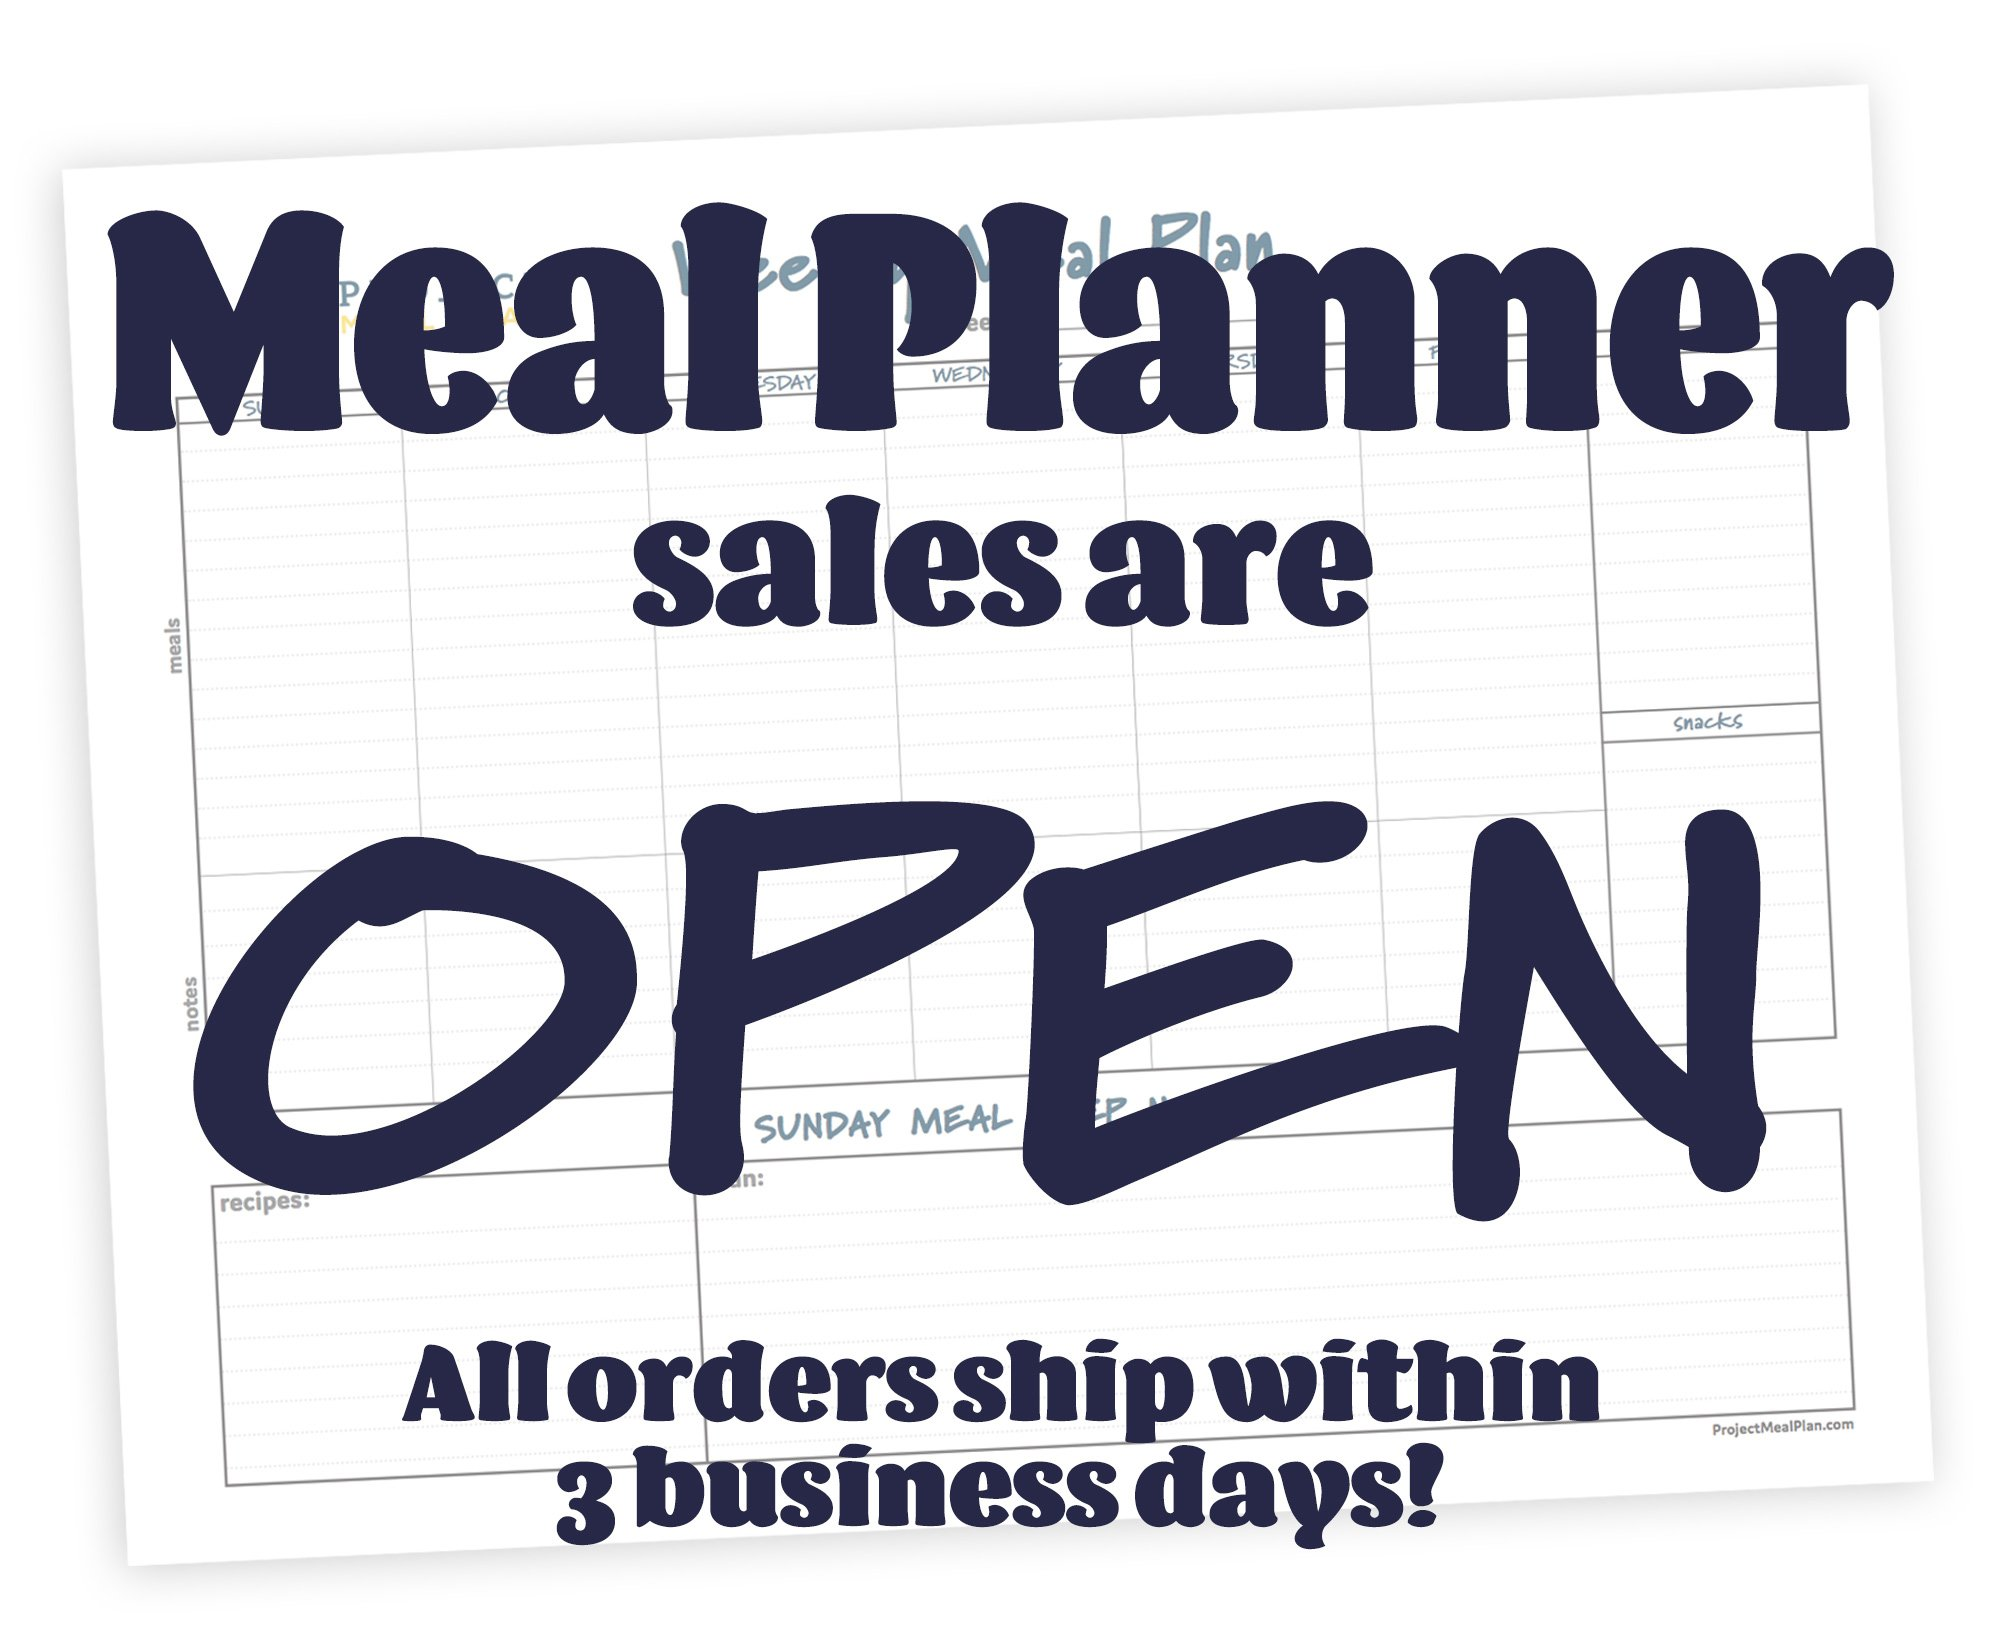 Meal Planner sales are OPEN. All orders ship within 3 business days.